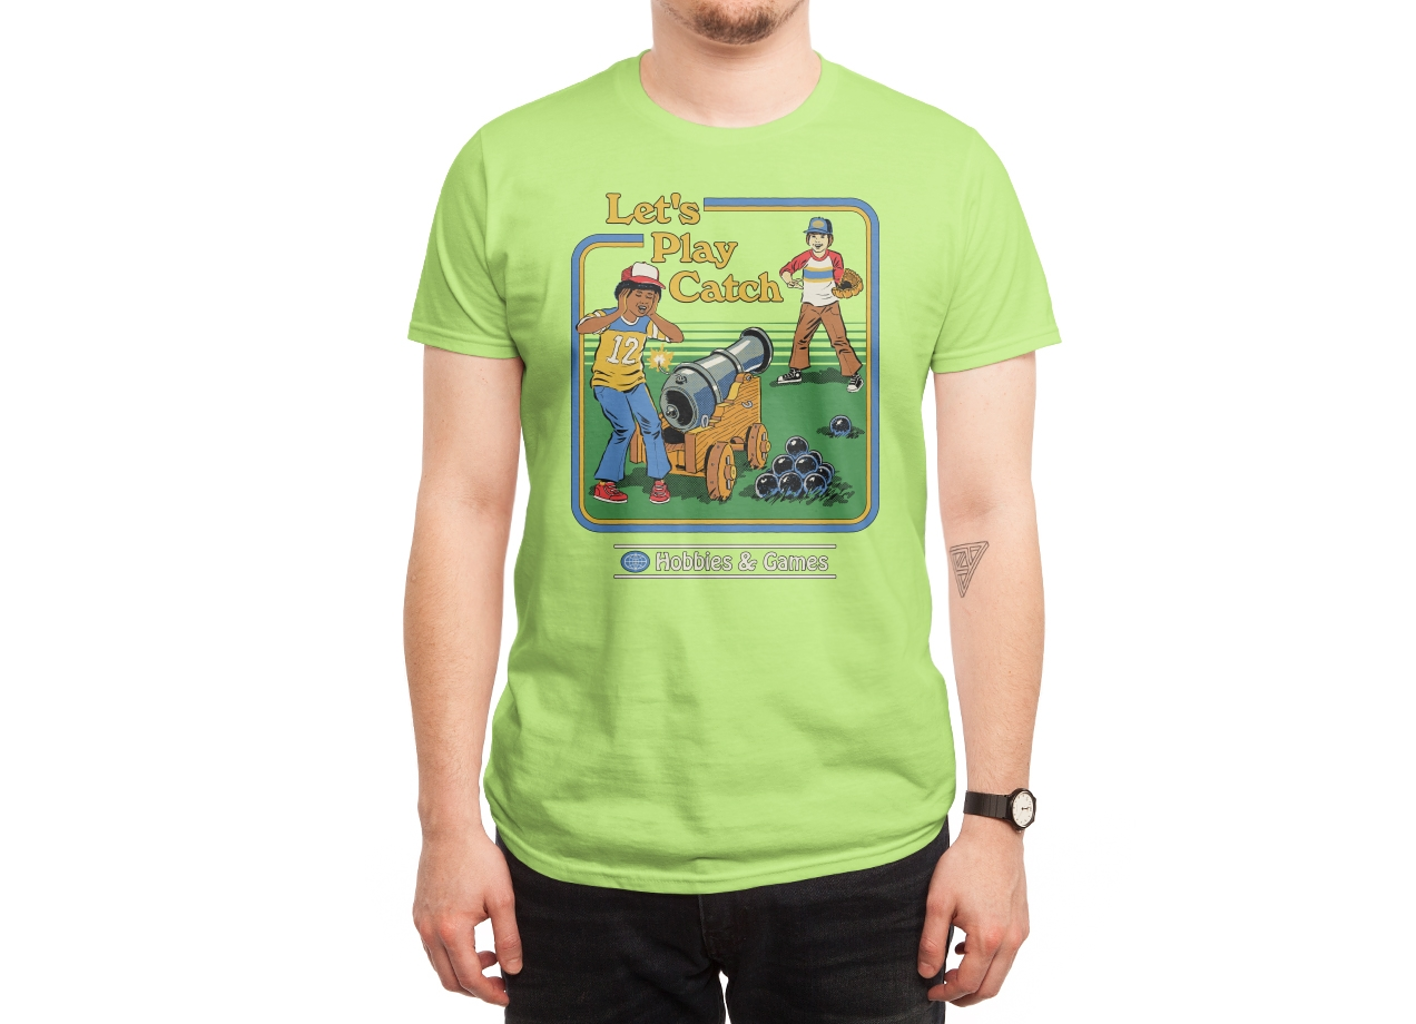 Threadless: Let's Play Catch